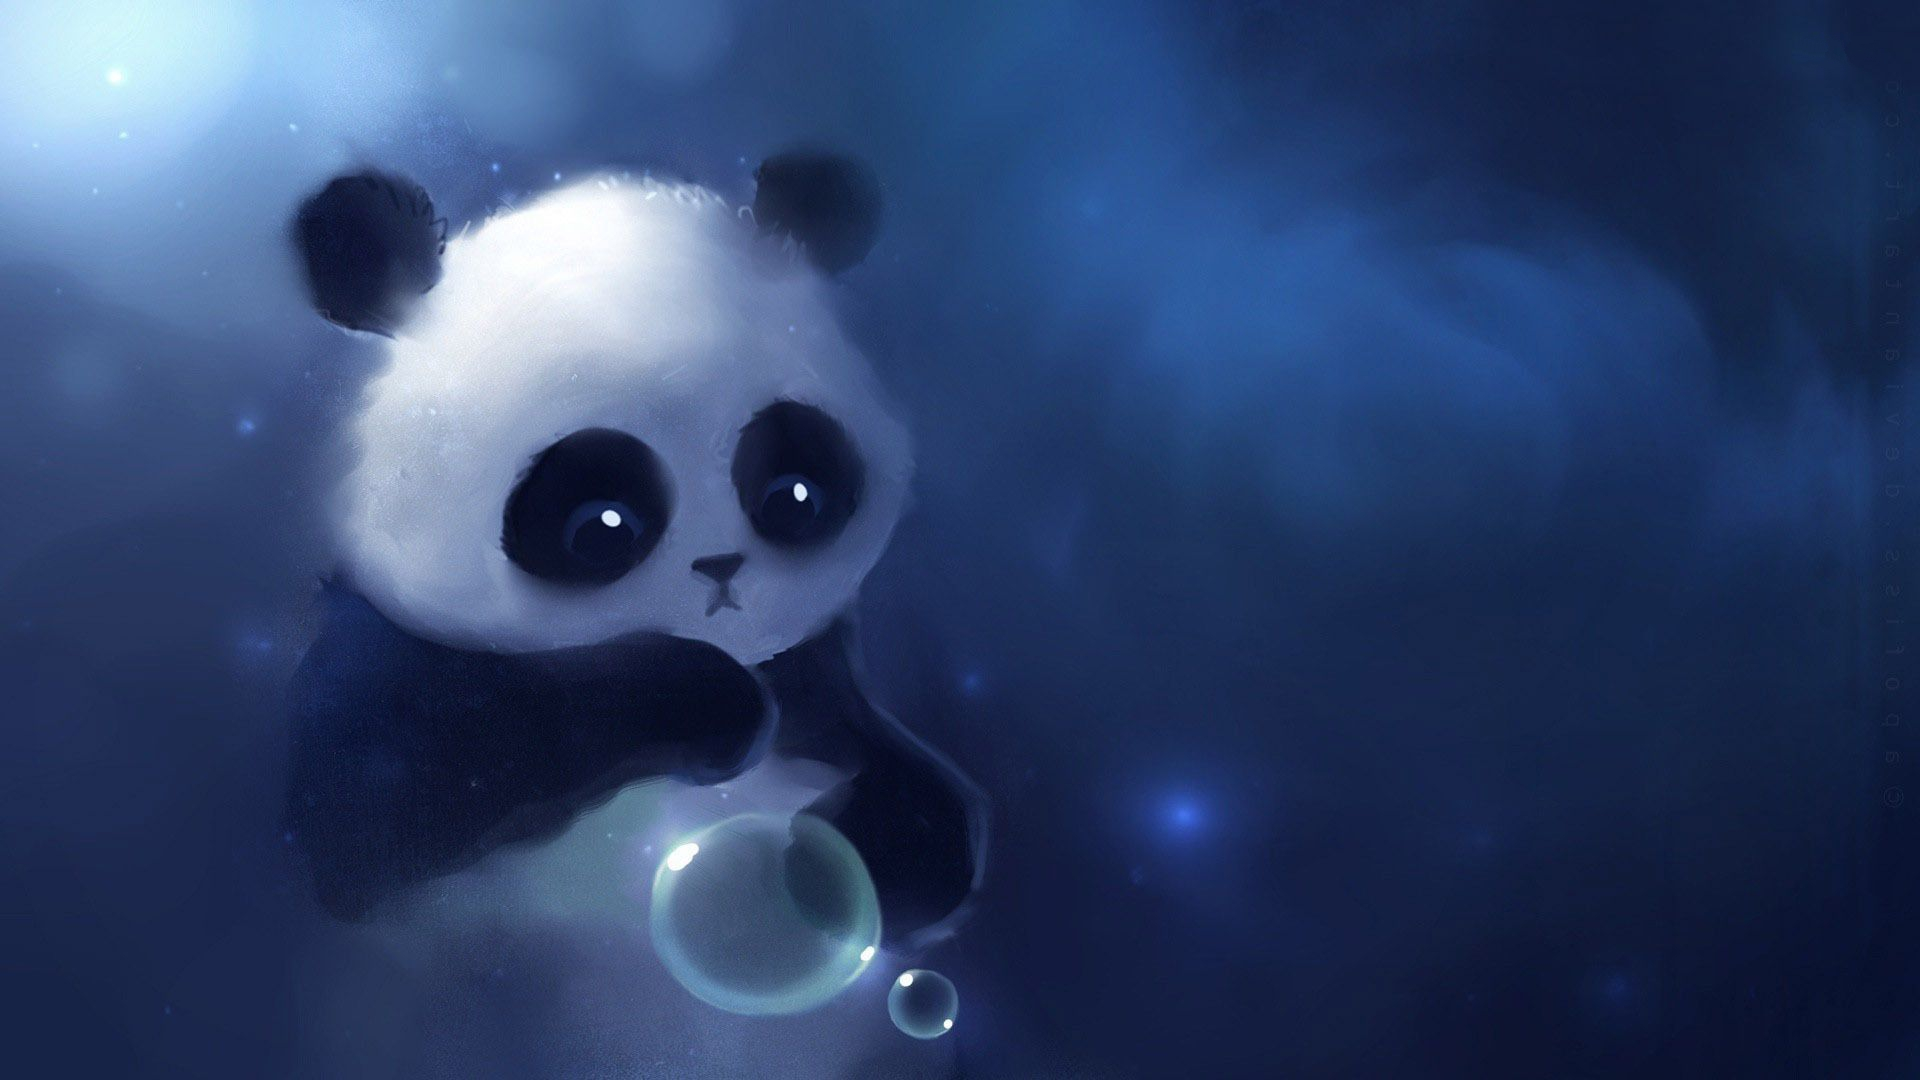 Wallpaperwiki Cute Panda Wallpapers Tumblr PIC WPE007520